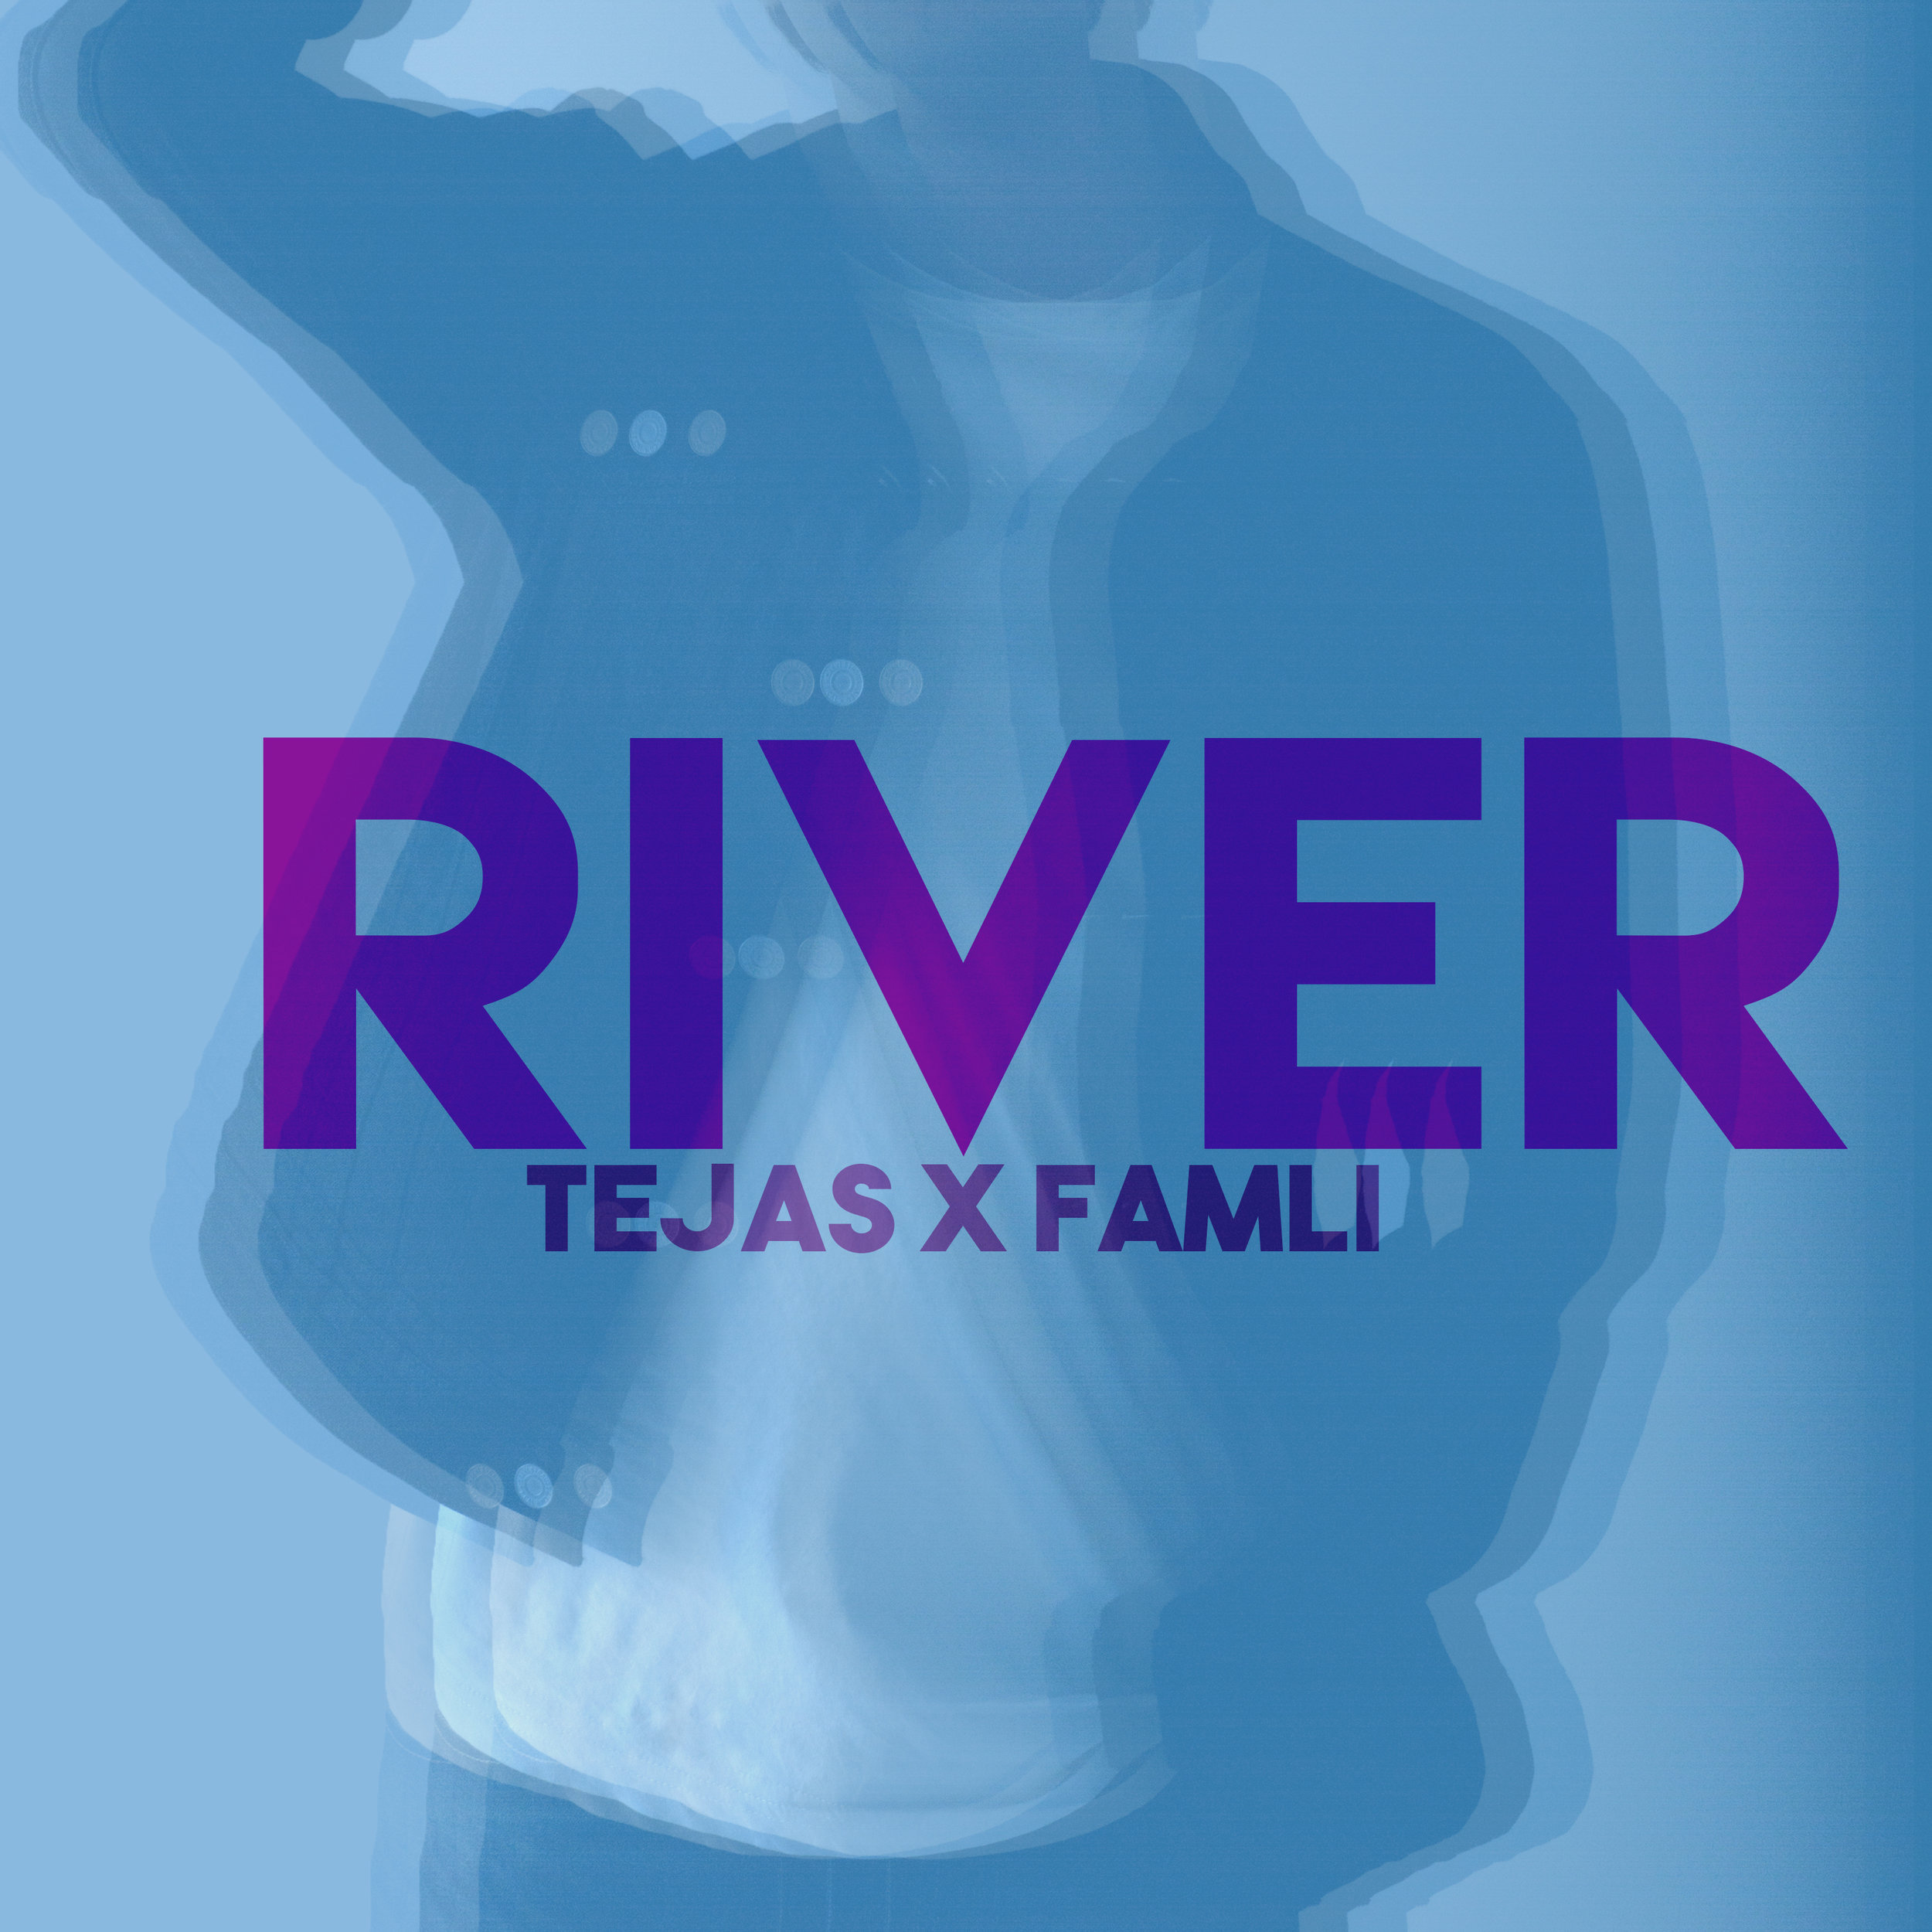 River_Album_Art_Large_05.jpg